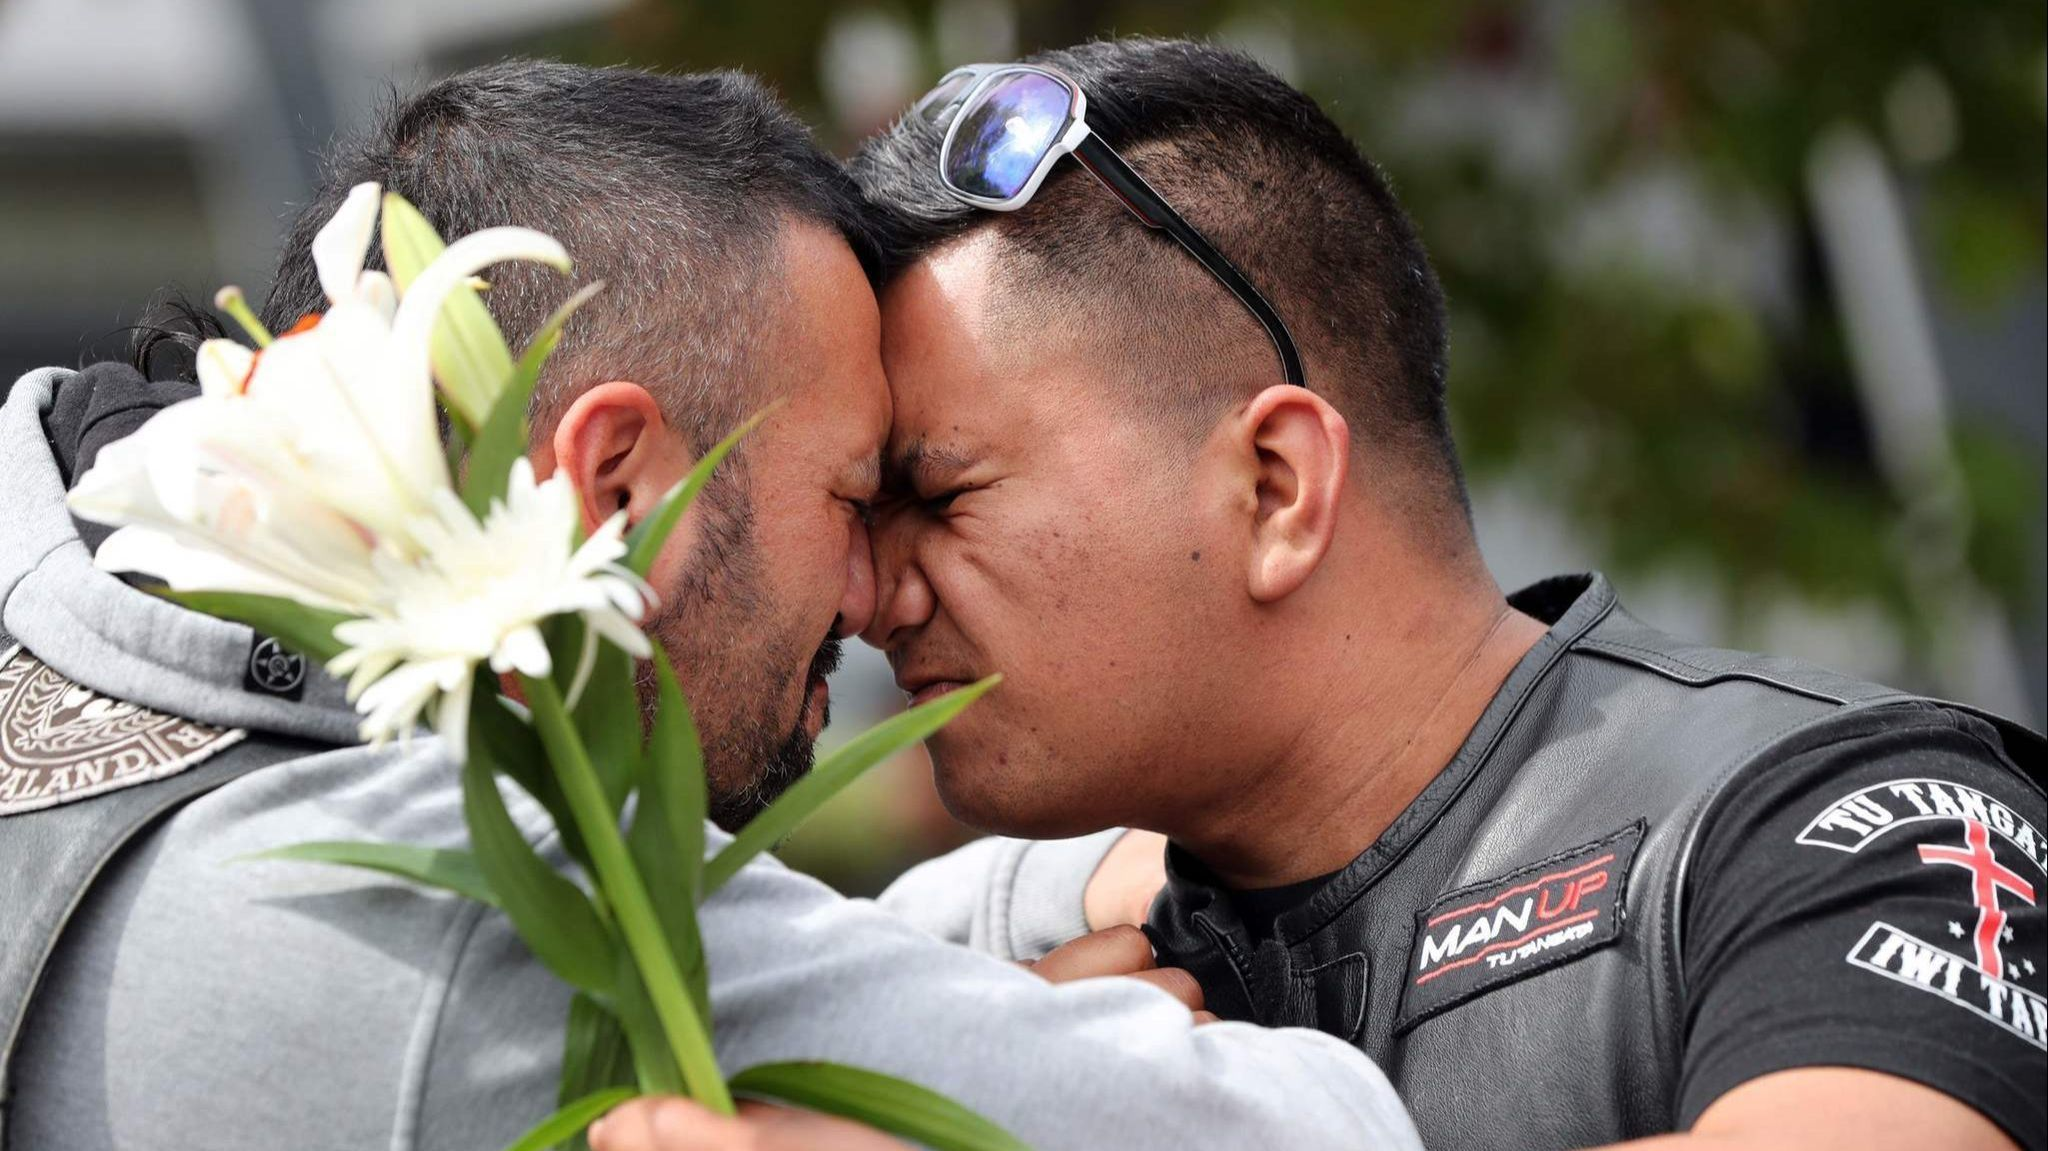 In the chaos of the New Zealand mosque attacks, one hero's action saved lives